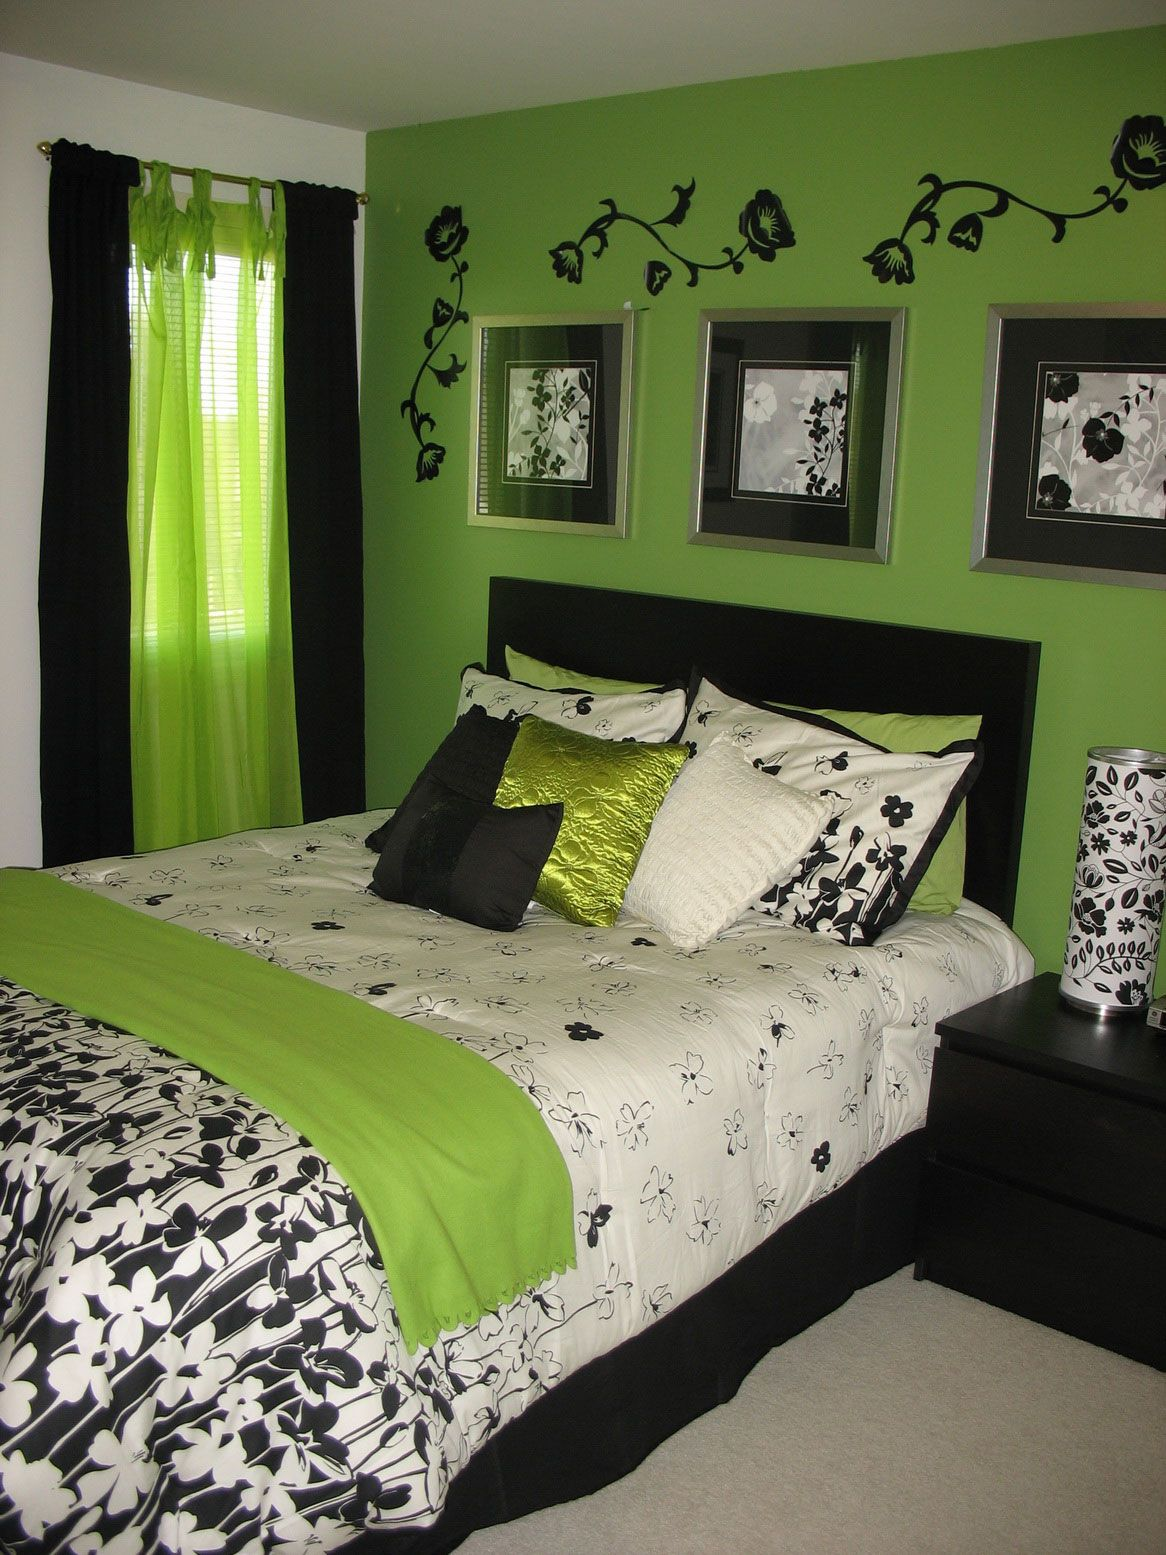 Room color ideas for young adults - Young Adult Bedroom Ideas Google Search Would Like Blue Or Purple Instead Of Green For